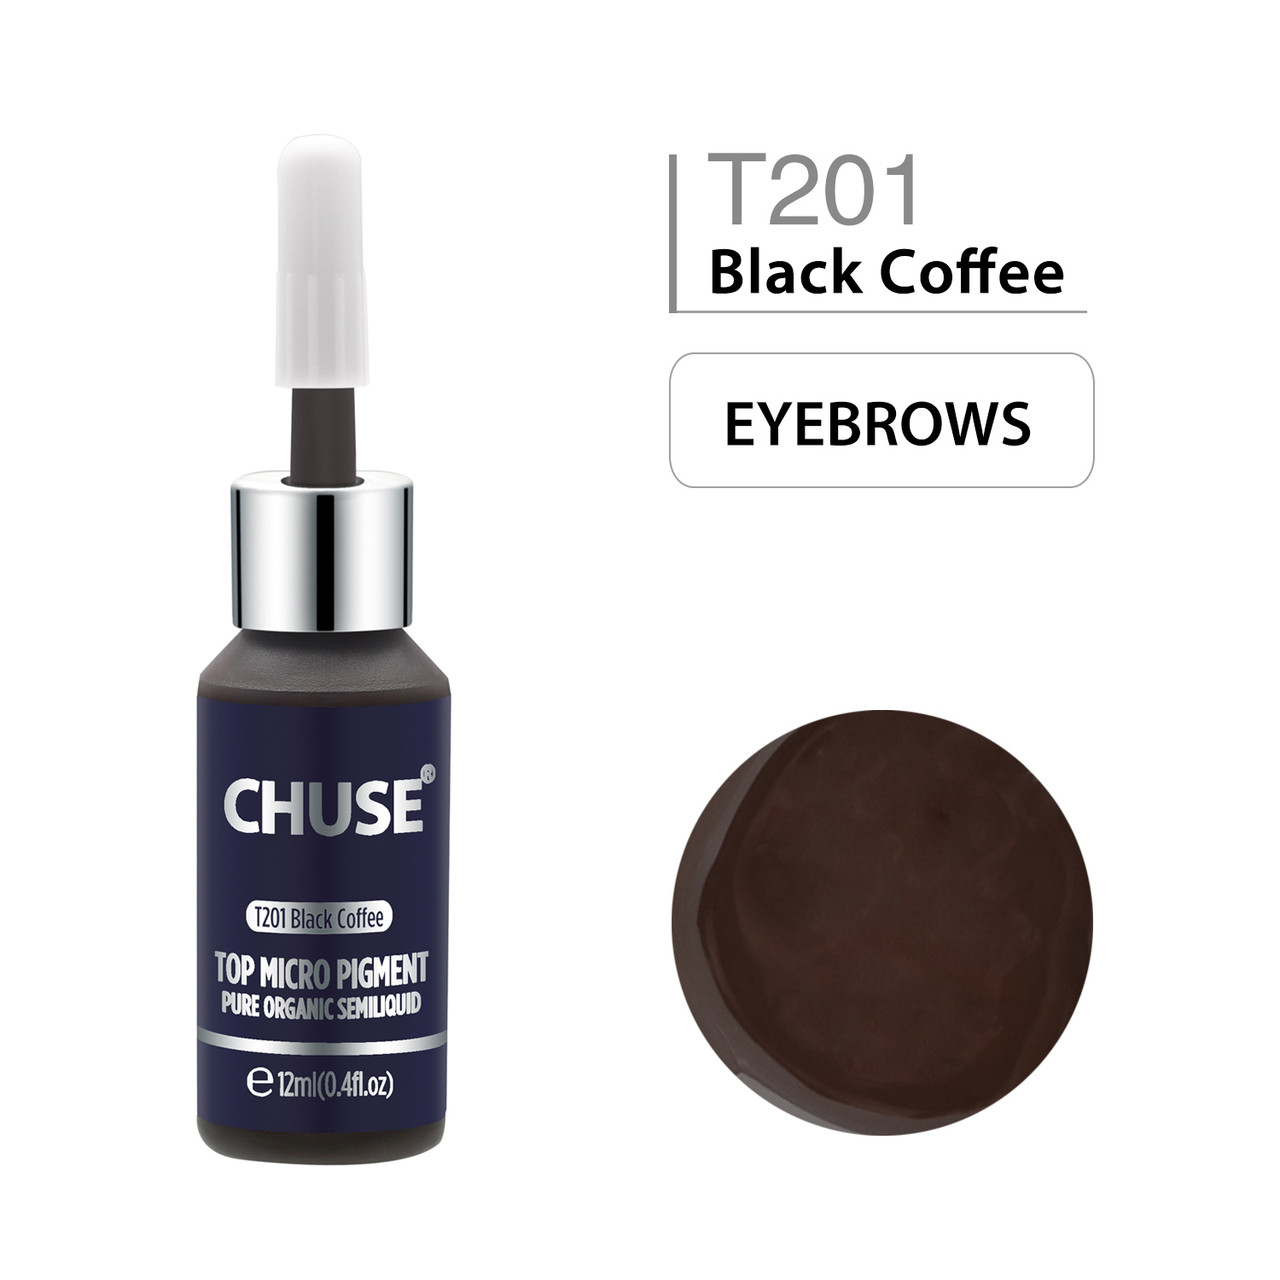 CHUSE T201, 12ml, Black Coffee, Passed SGS,DermaTest Top Micro Pigment  Cosmetic Color Permanent Makeup Tattoo Ink